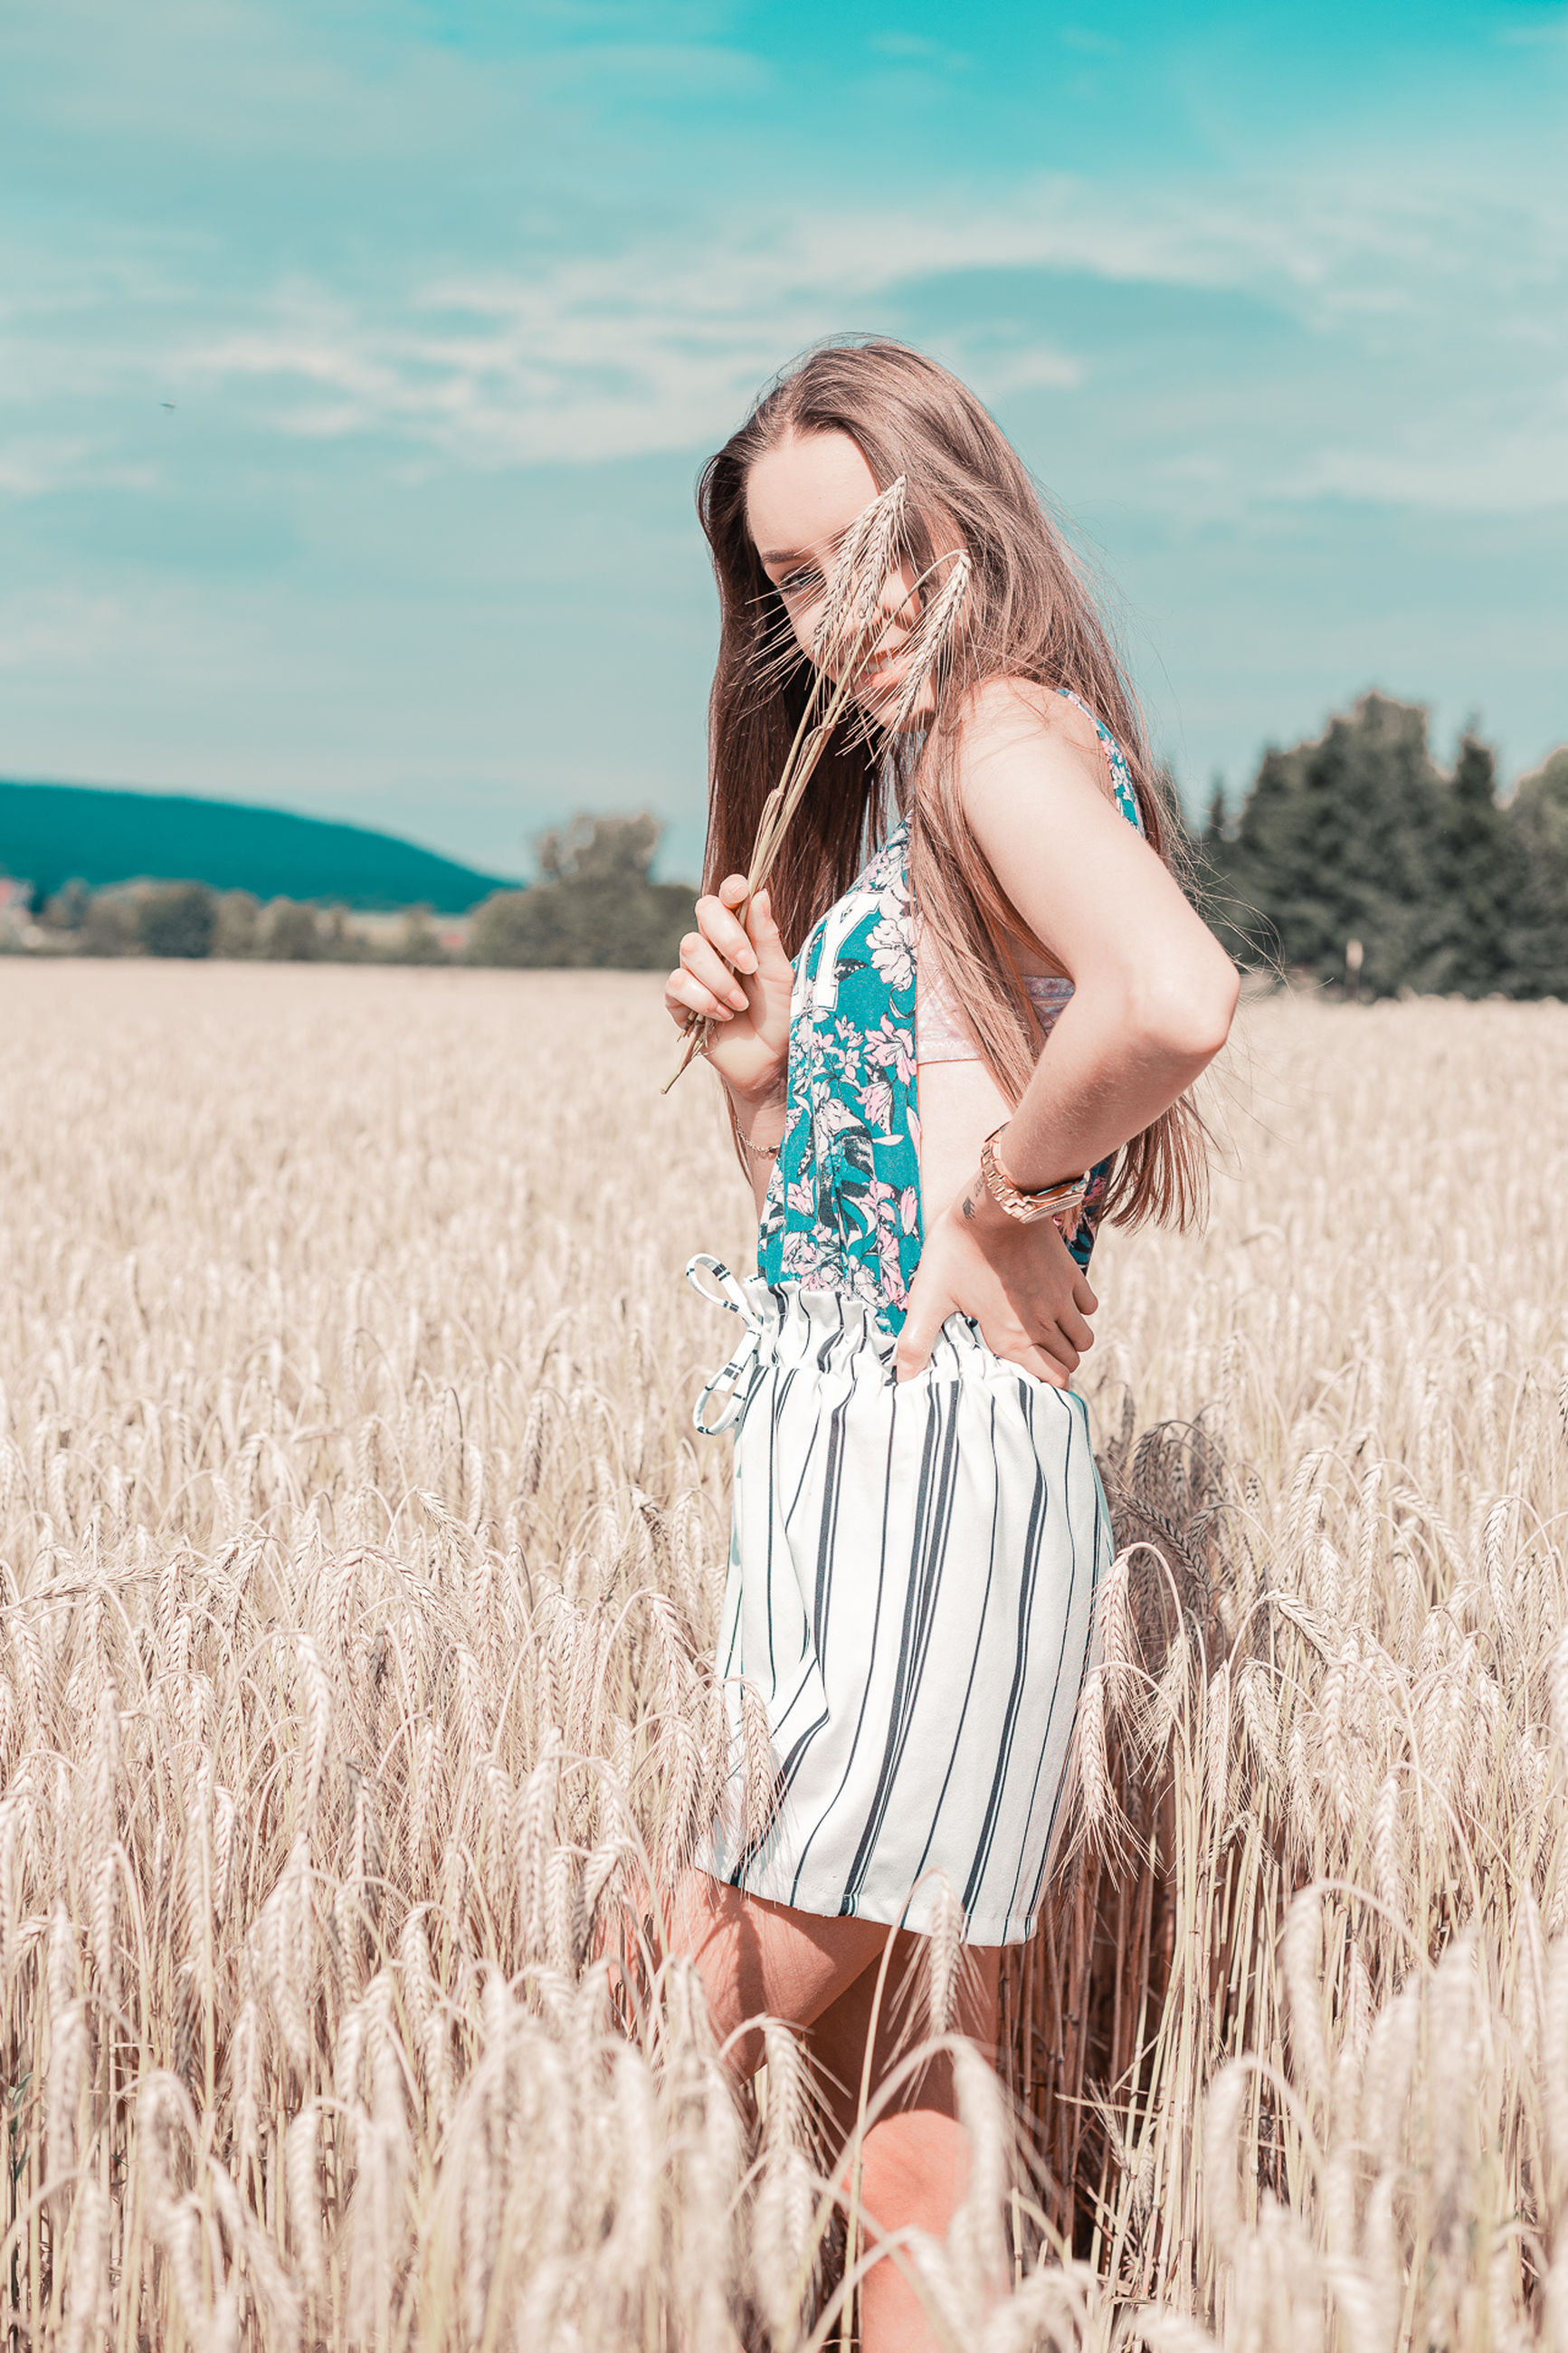 one person, field, land, agriculture, real people, crop, lifestyles, women, leisure activity, long hair, hair, plant, nature, cereal plant, farm, landscape, hairstyle, day, casual clothing, beautiful woman, outdoors